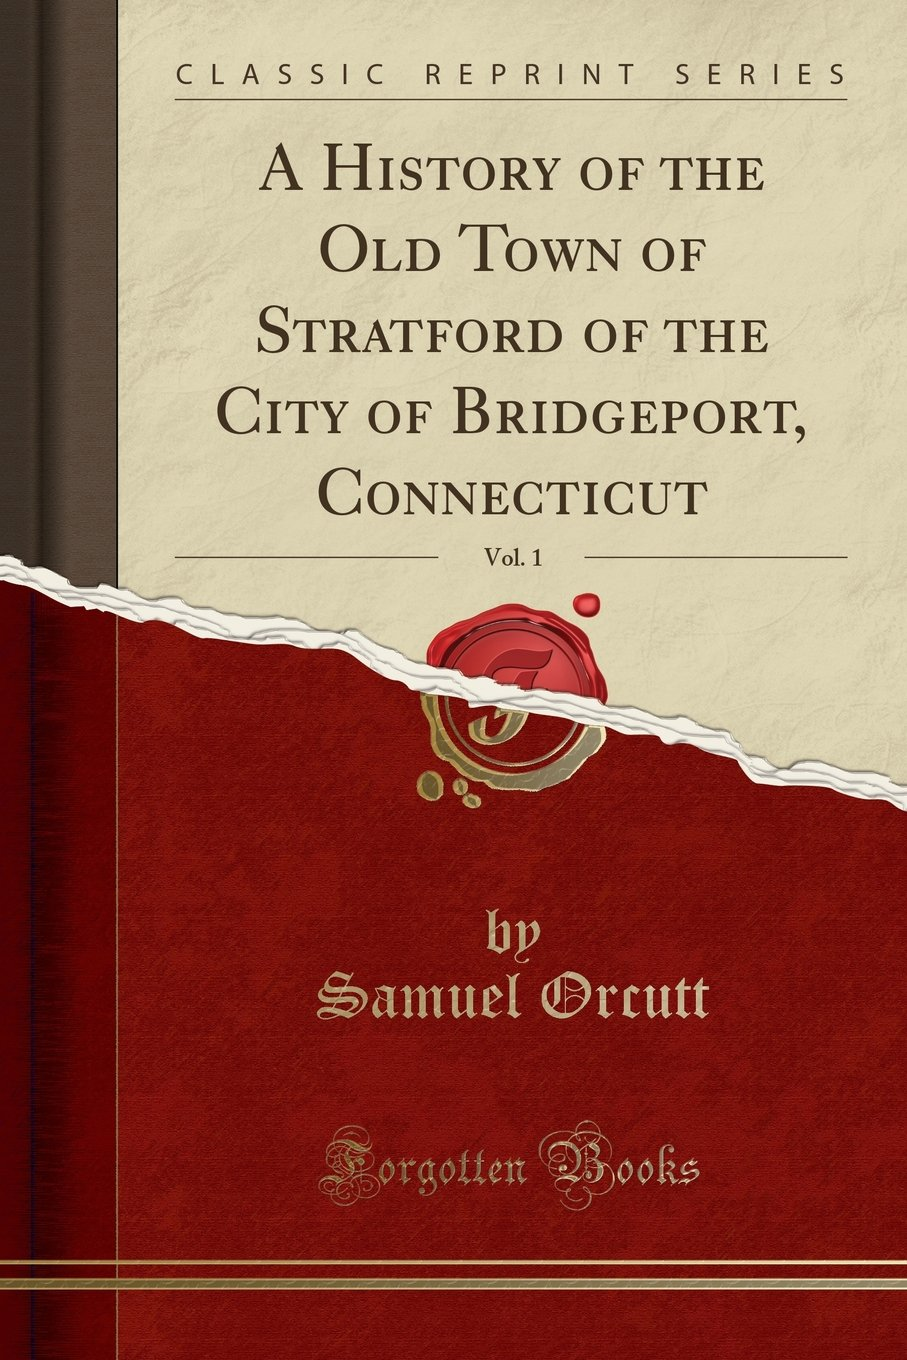 A History of the Old Town of Stratford of the City of Bridgeport, Connecticut, Vol. 1 (Classic Reprint) PDF